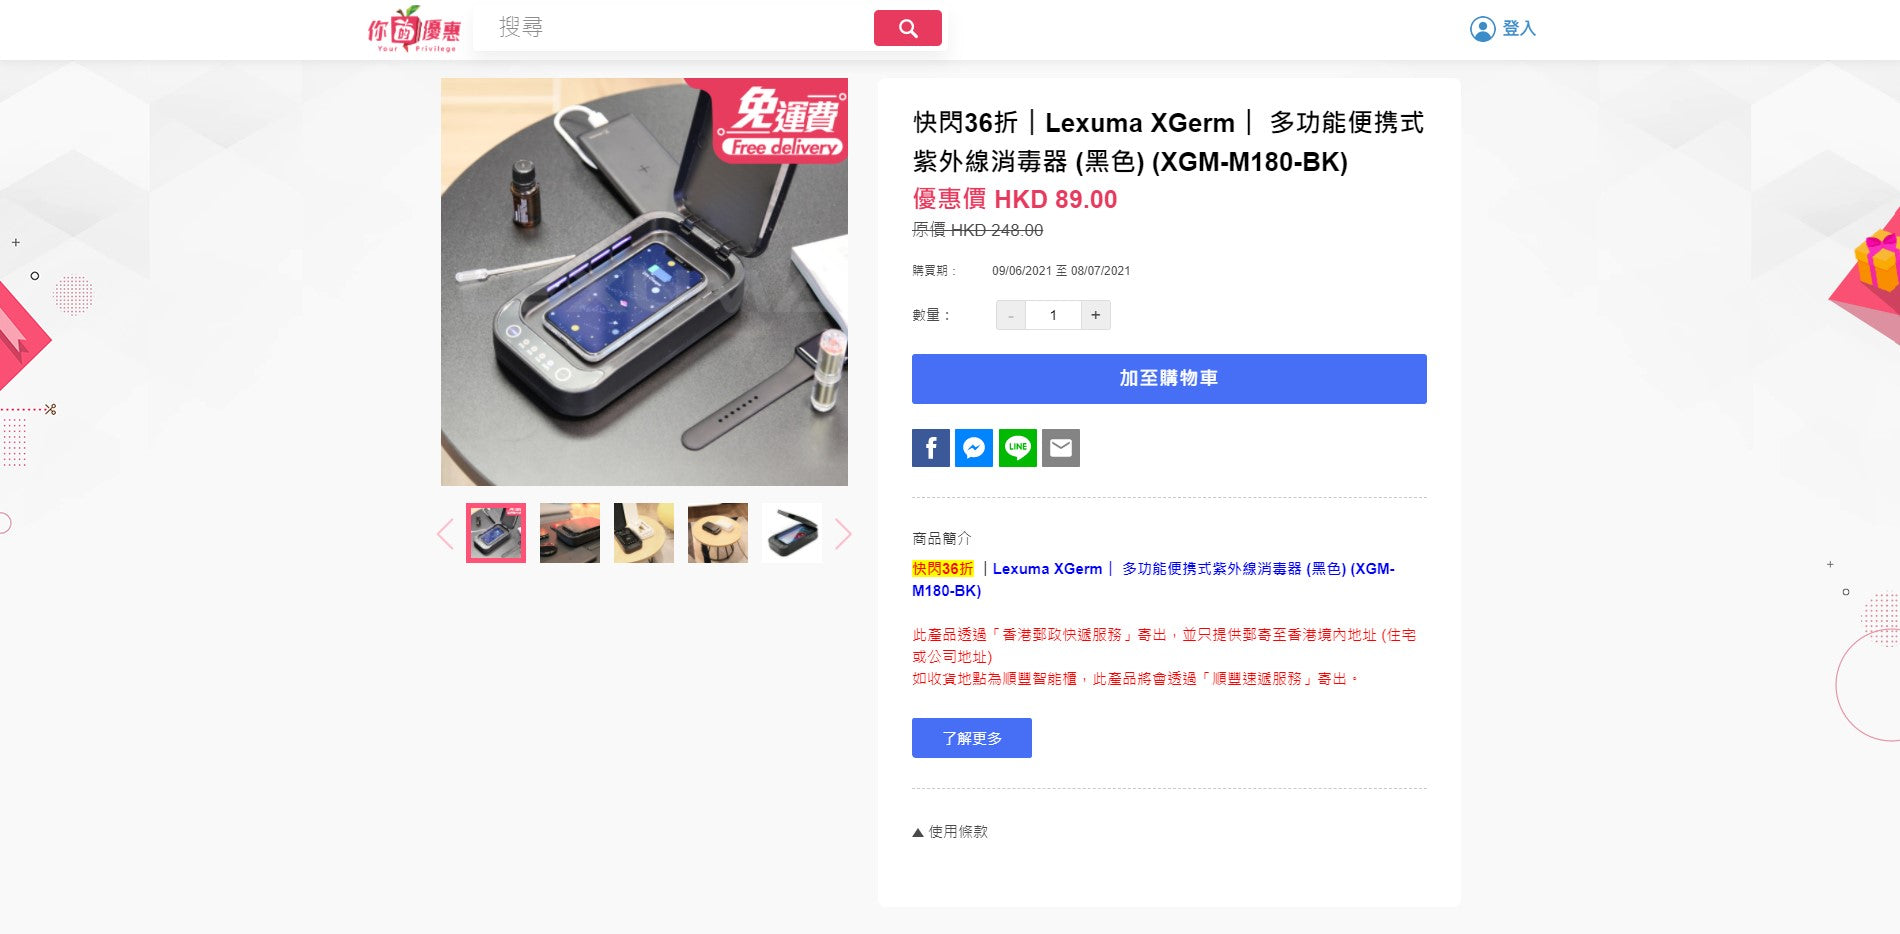 【Limited】Special Promotions For Fathers Day on Your Privilege of Apple Daily - XGerm 多功能便携式紫外線消毒器 (黑色)